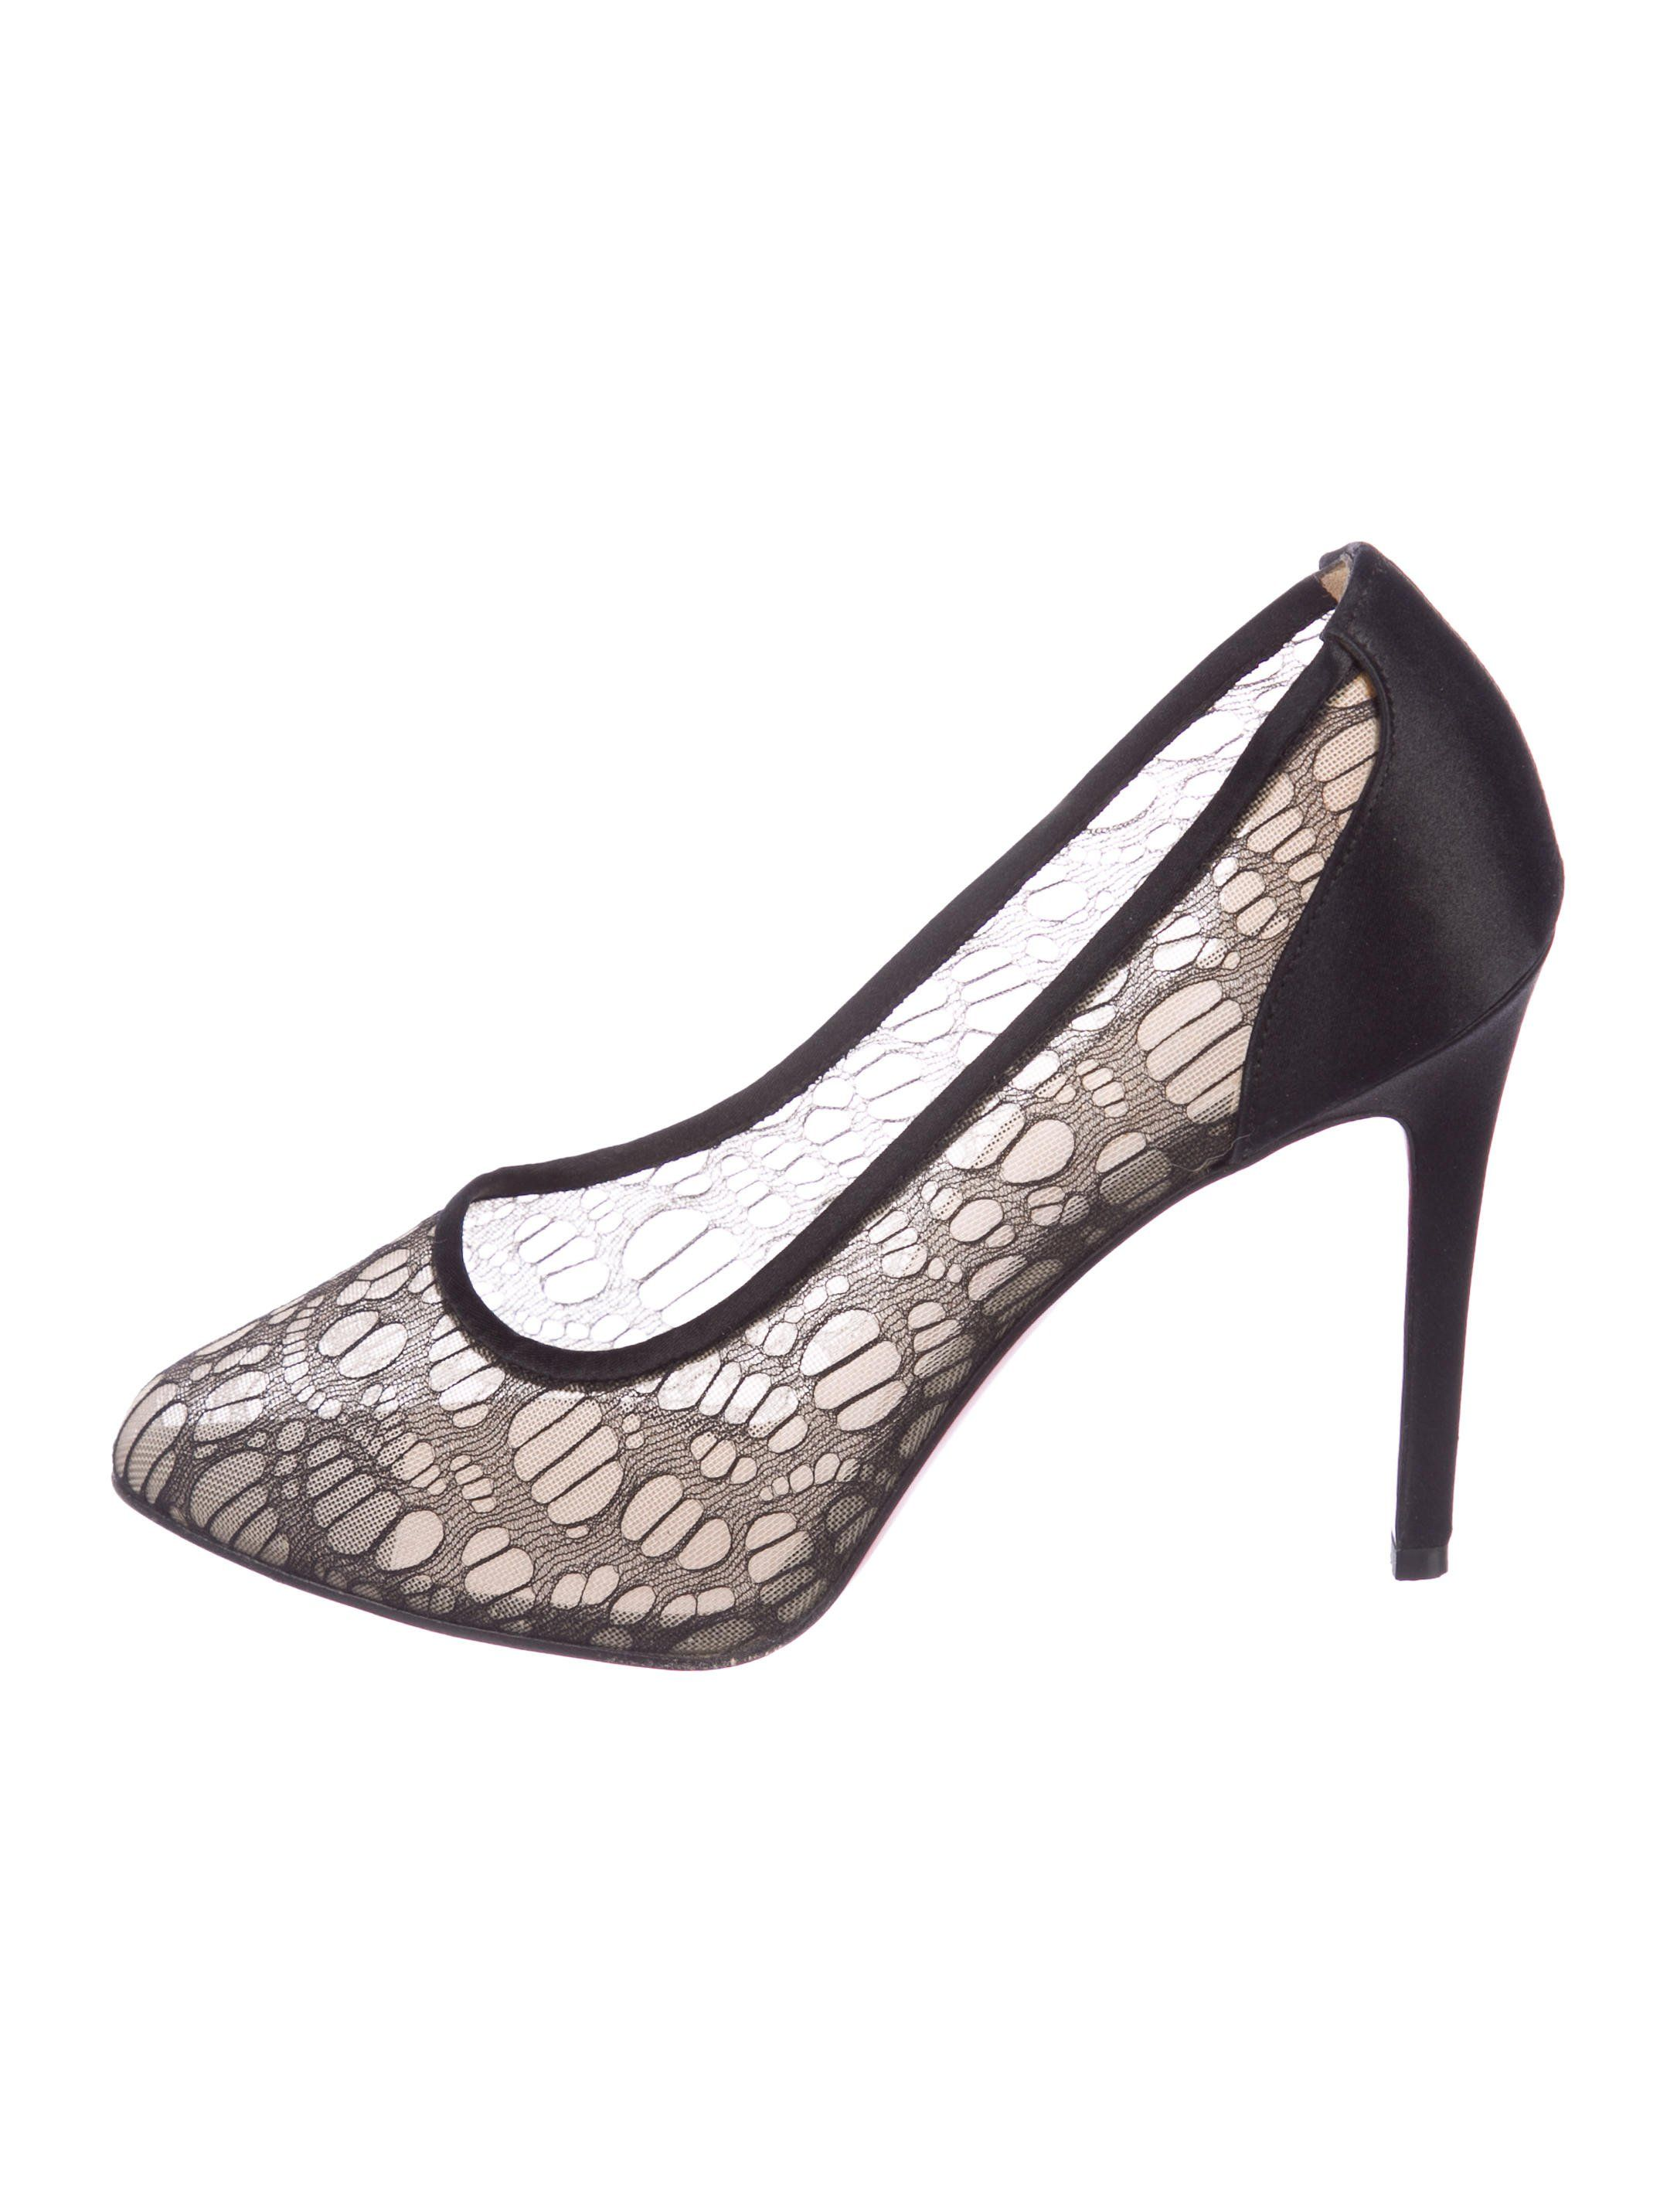 6ae81d116fdc Black mesh Christian Louboutin round-toe pumps with satin trim at counters  and top lines and covered heels.